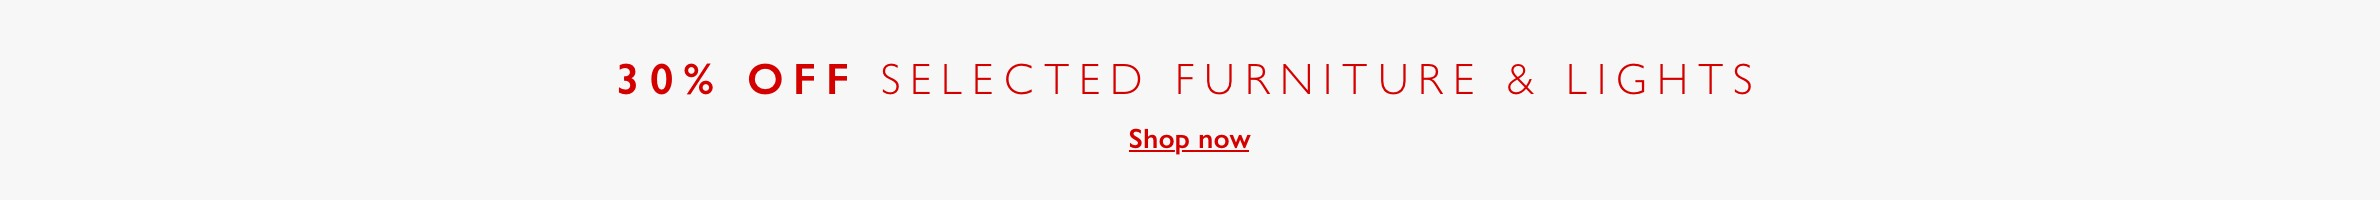 Furniture & Lights Bank Holiday Offers